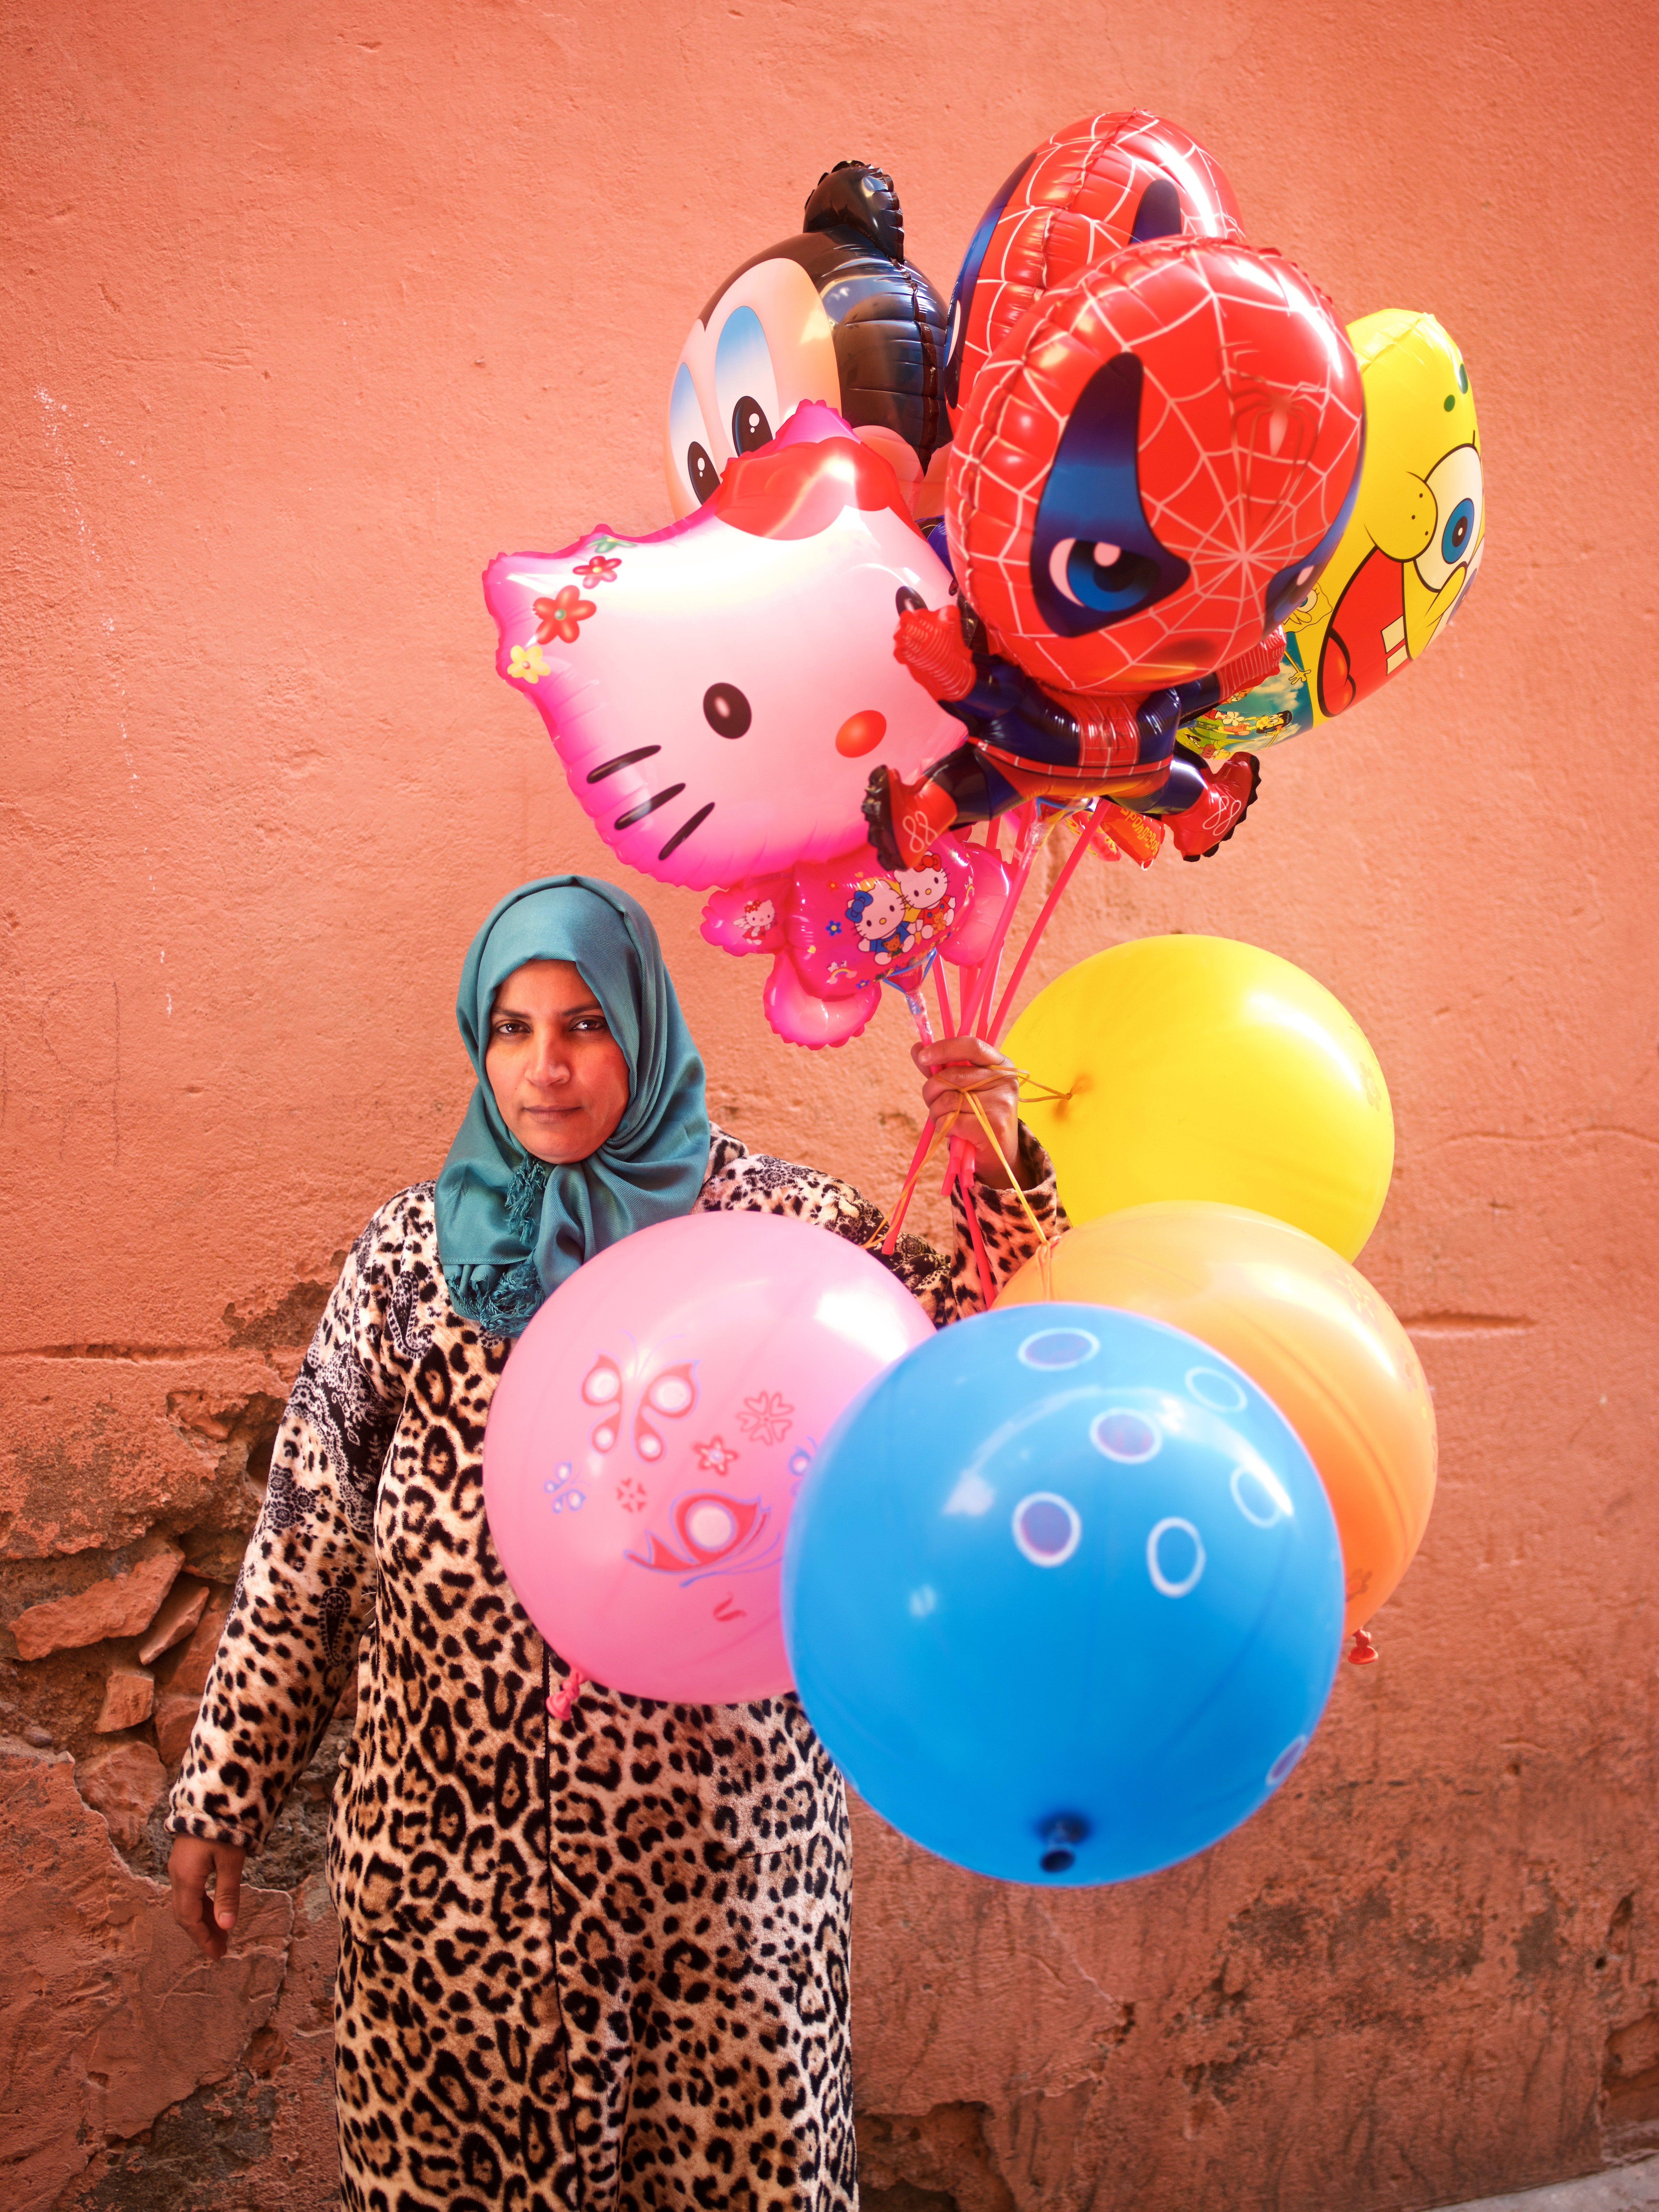 Touria Moutalib, Balloon Seller